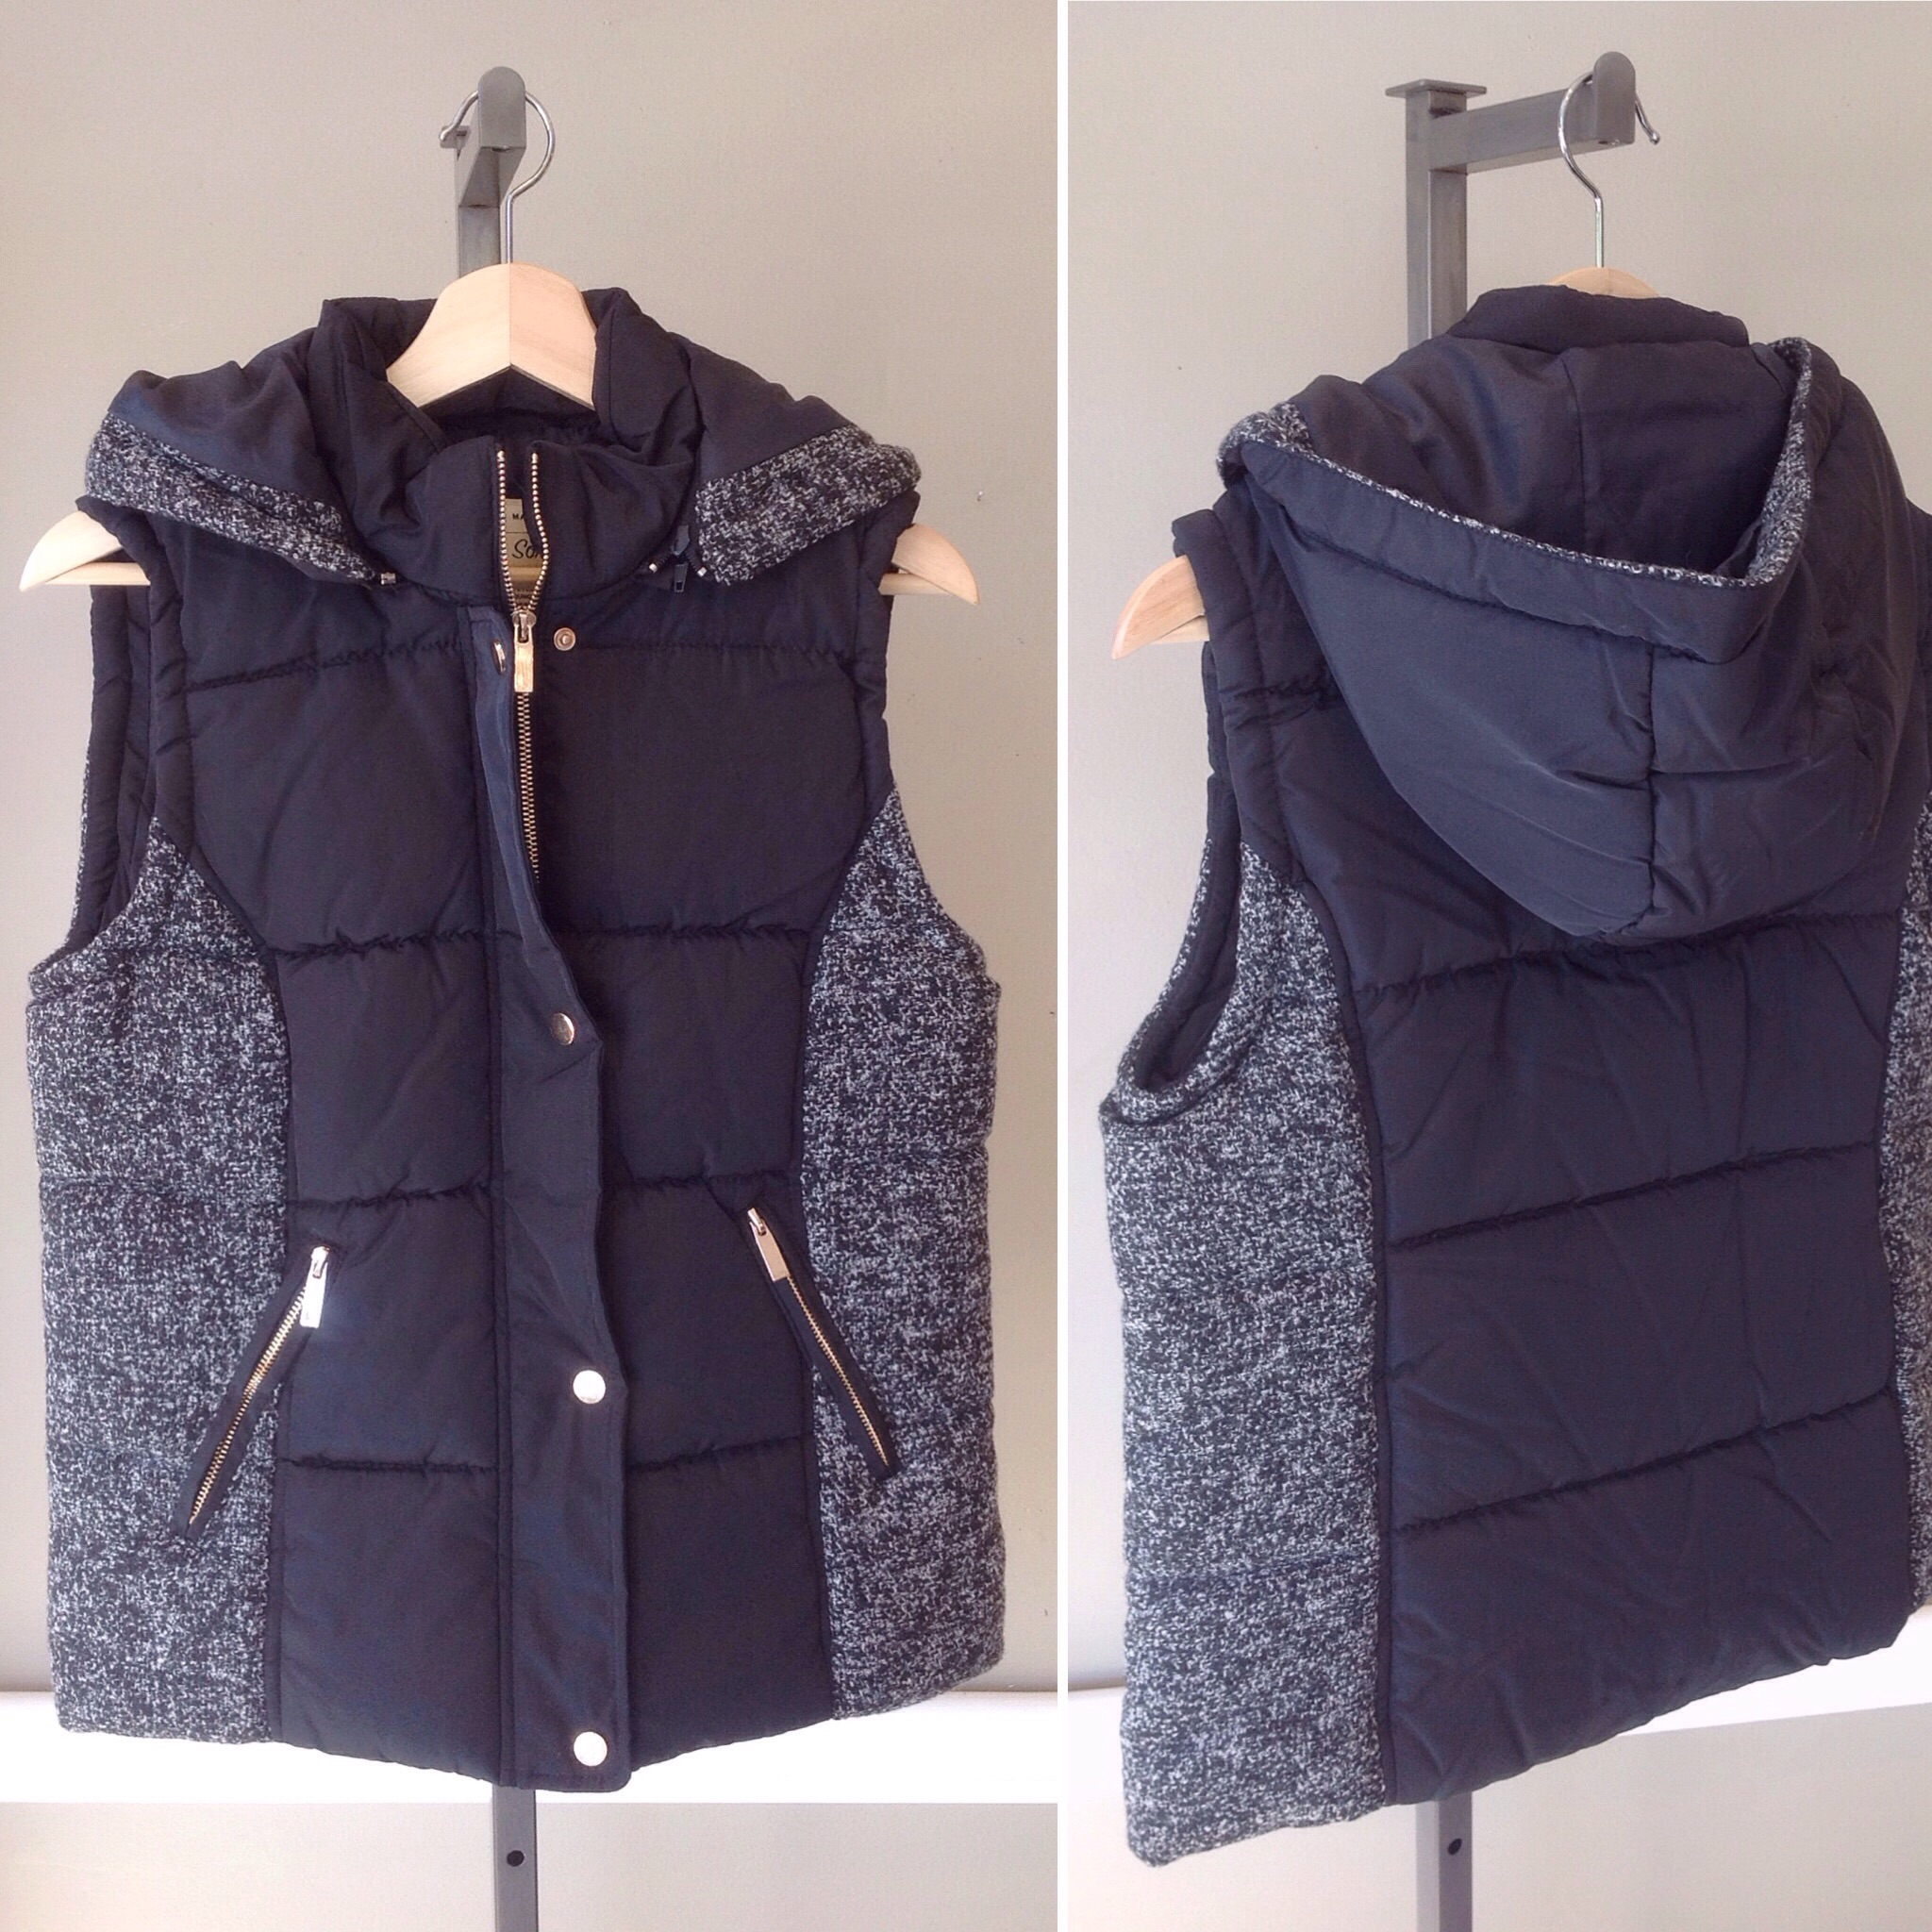 Puff vest with contrasting side panels and removable hood in black/grey, $45